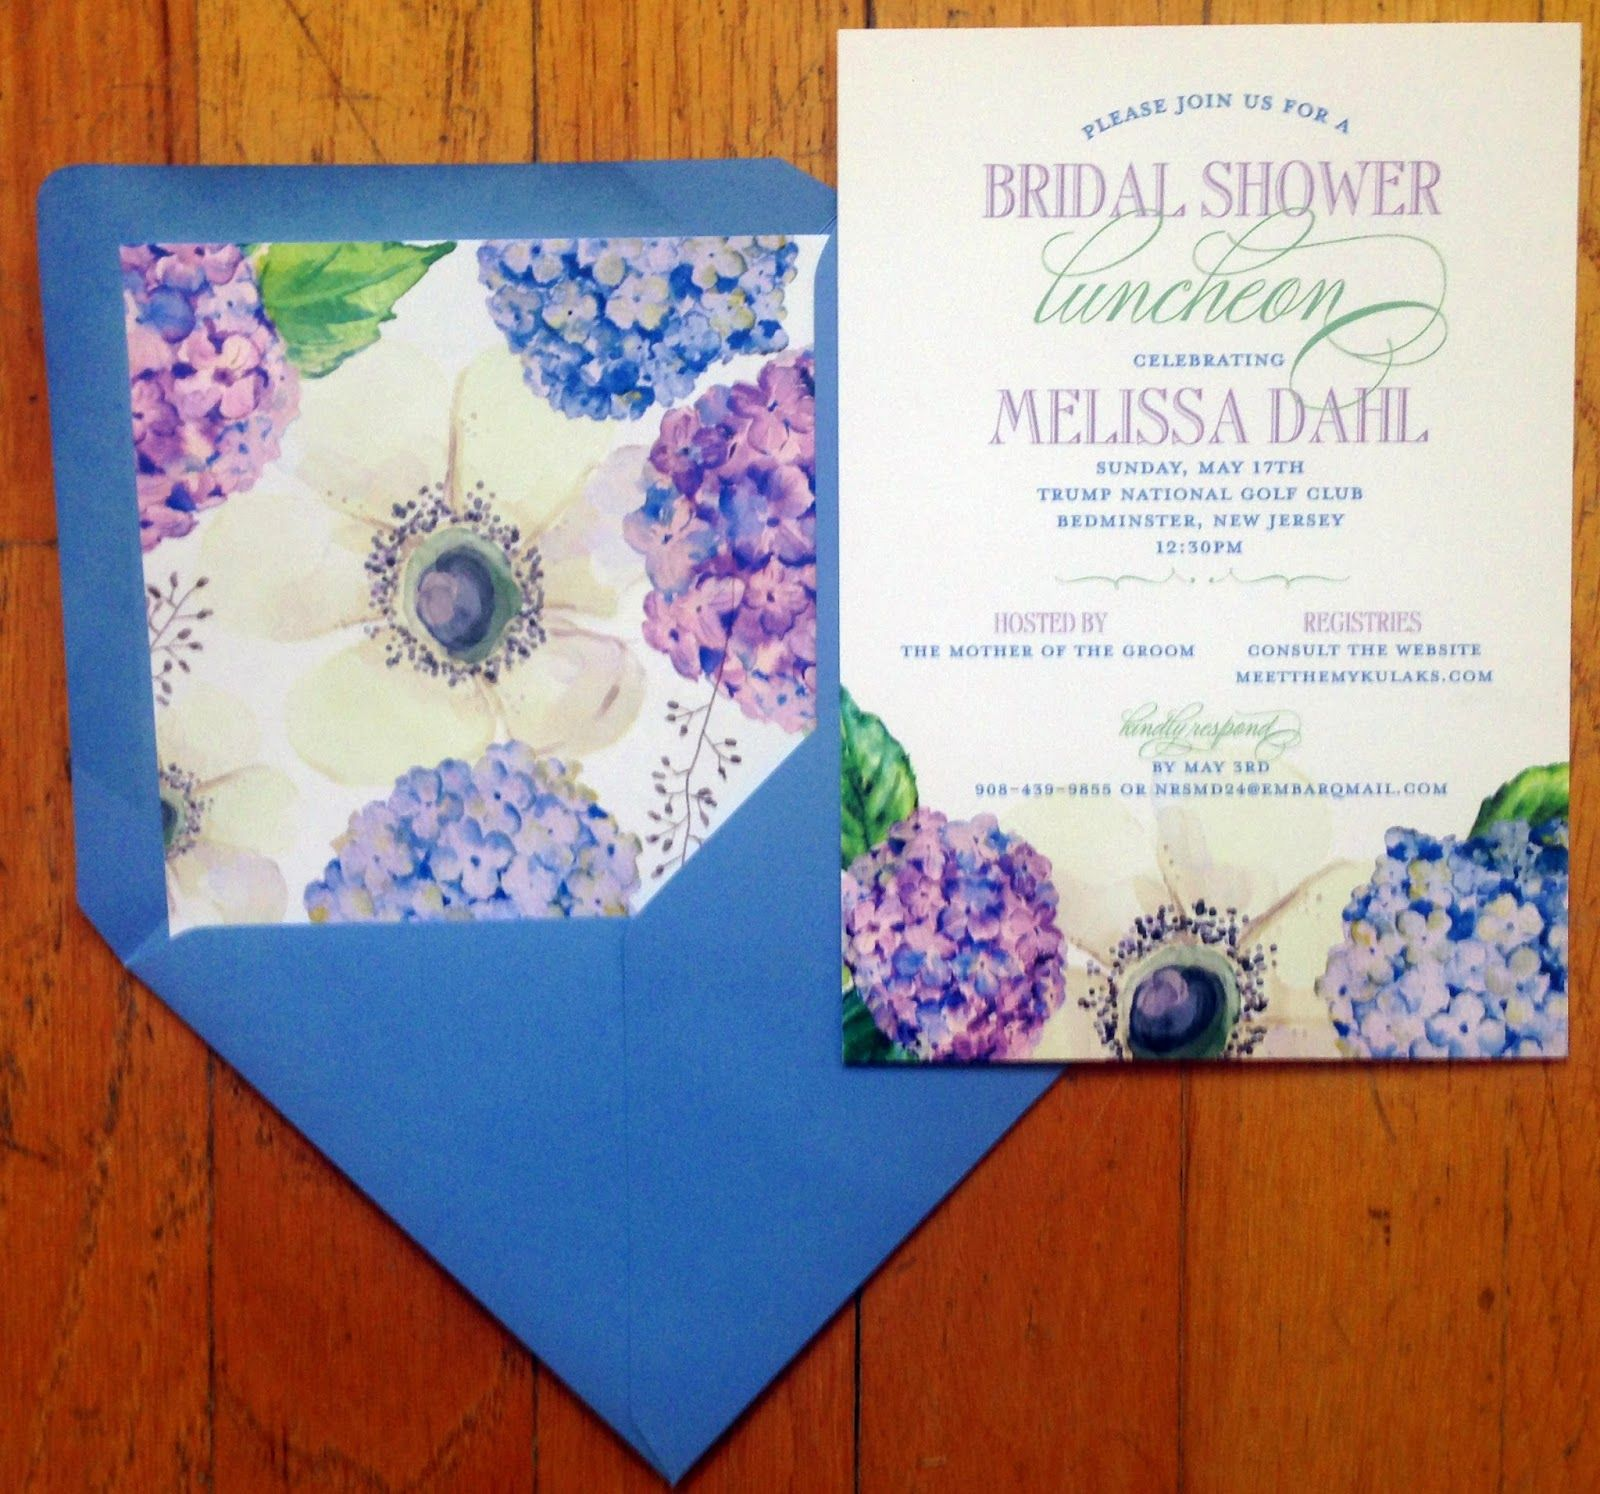 Bridal shower luncheon invitations including a floral